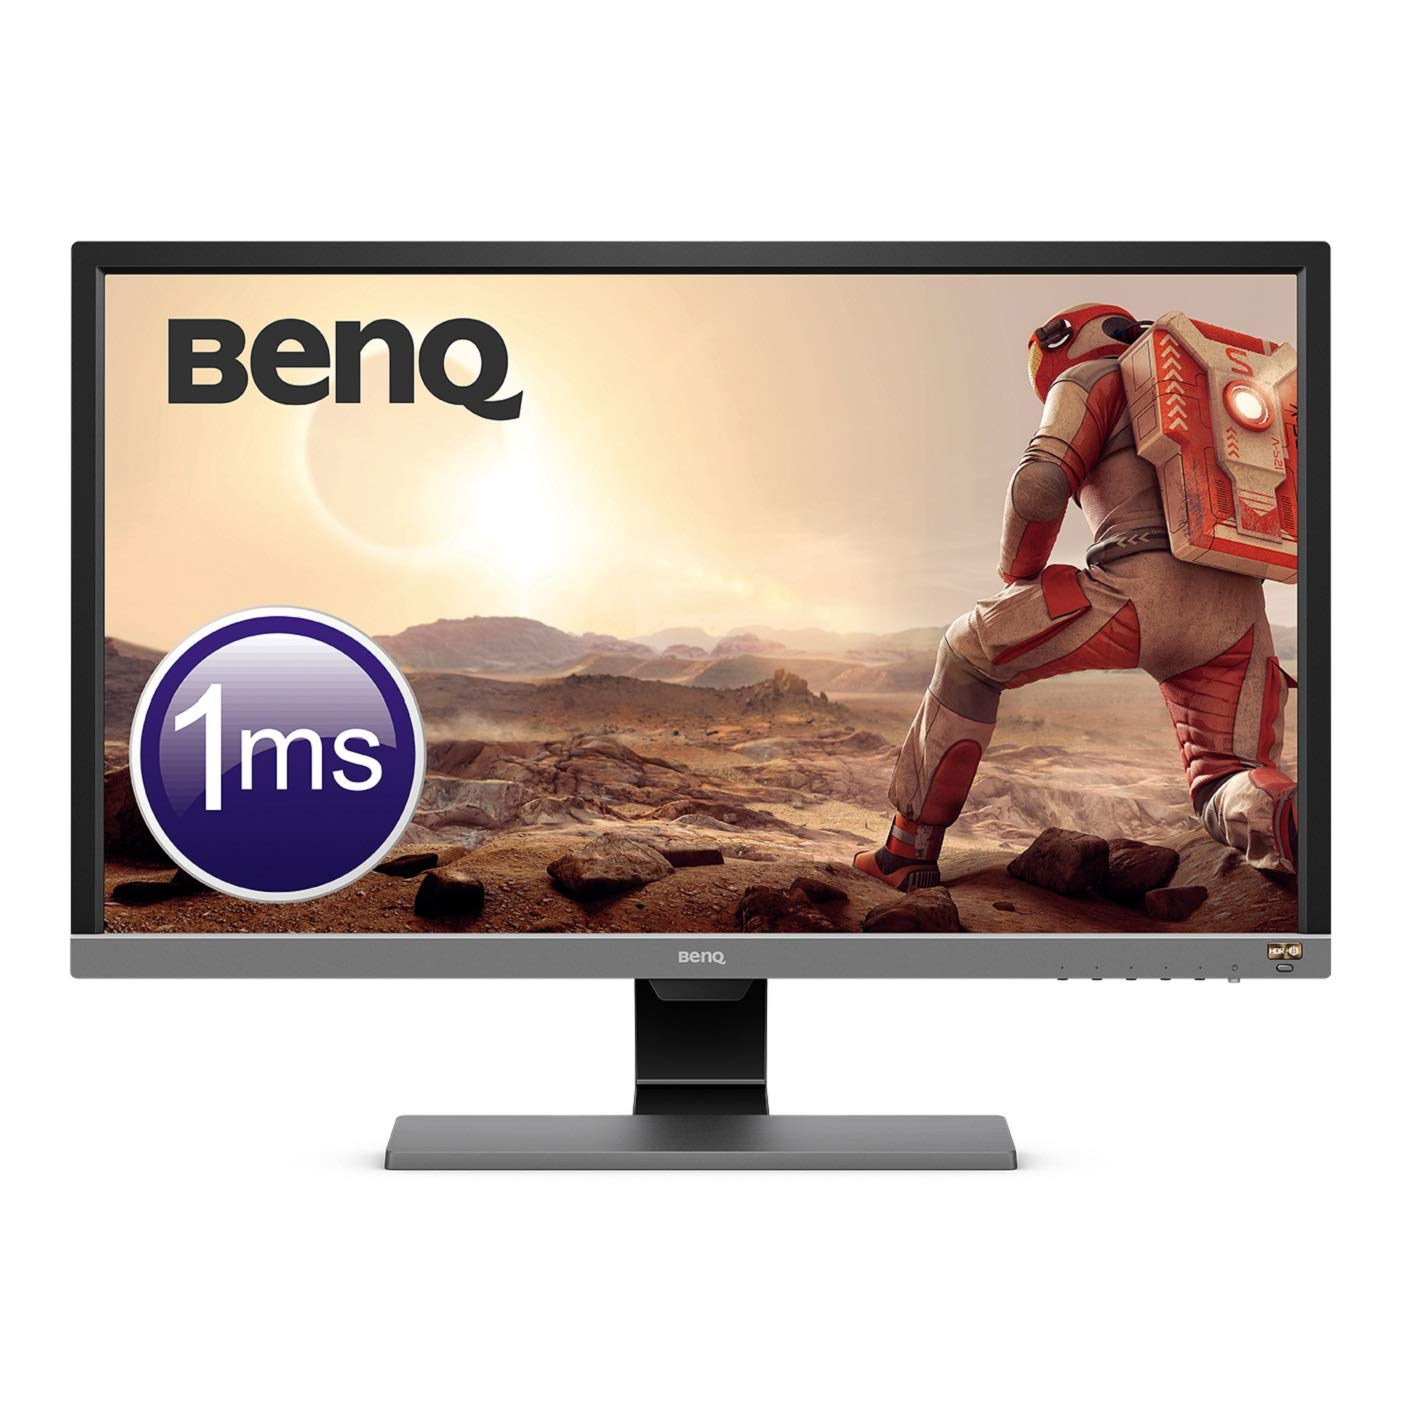 BenQ GL2580H 24.5 Inch FHD 1080p 1 ms Eye-Care LED Gaming Monitor, HDMI